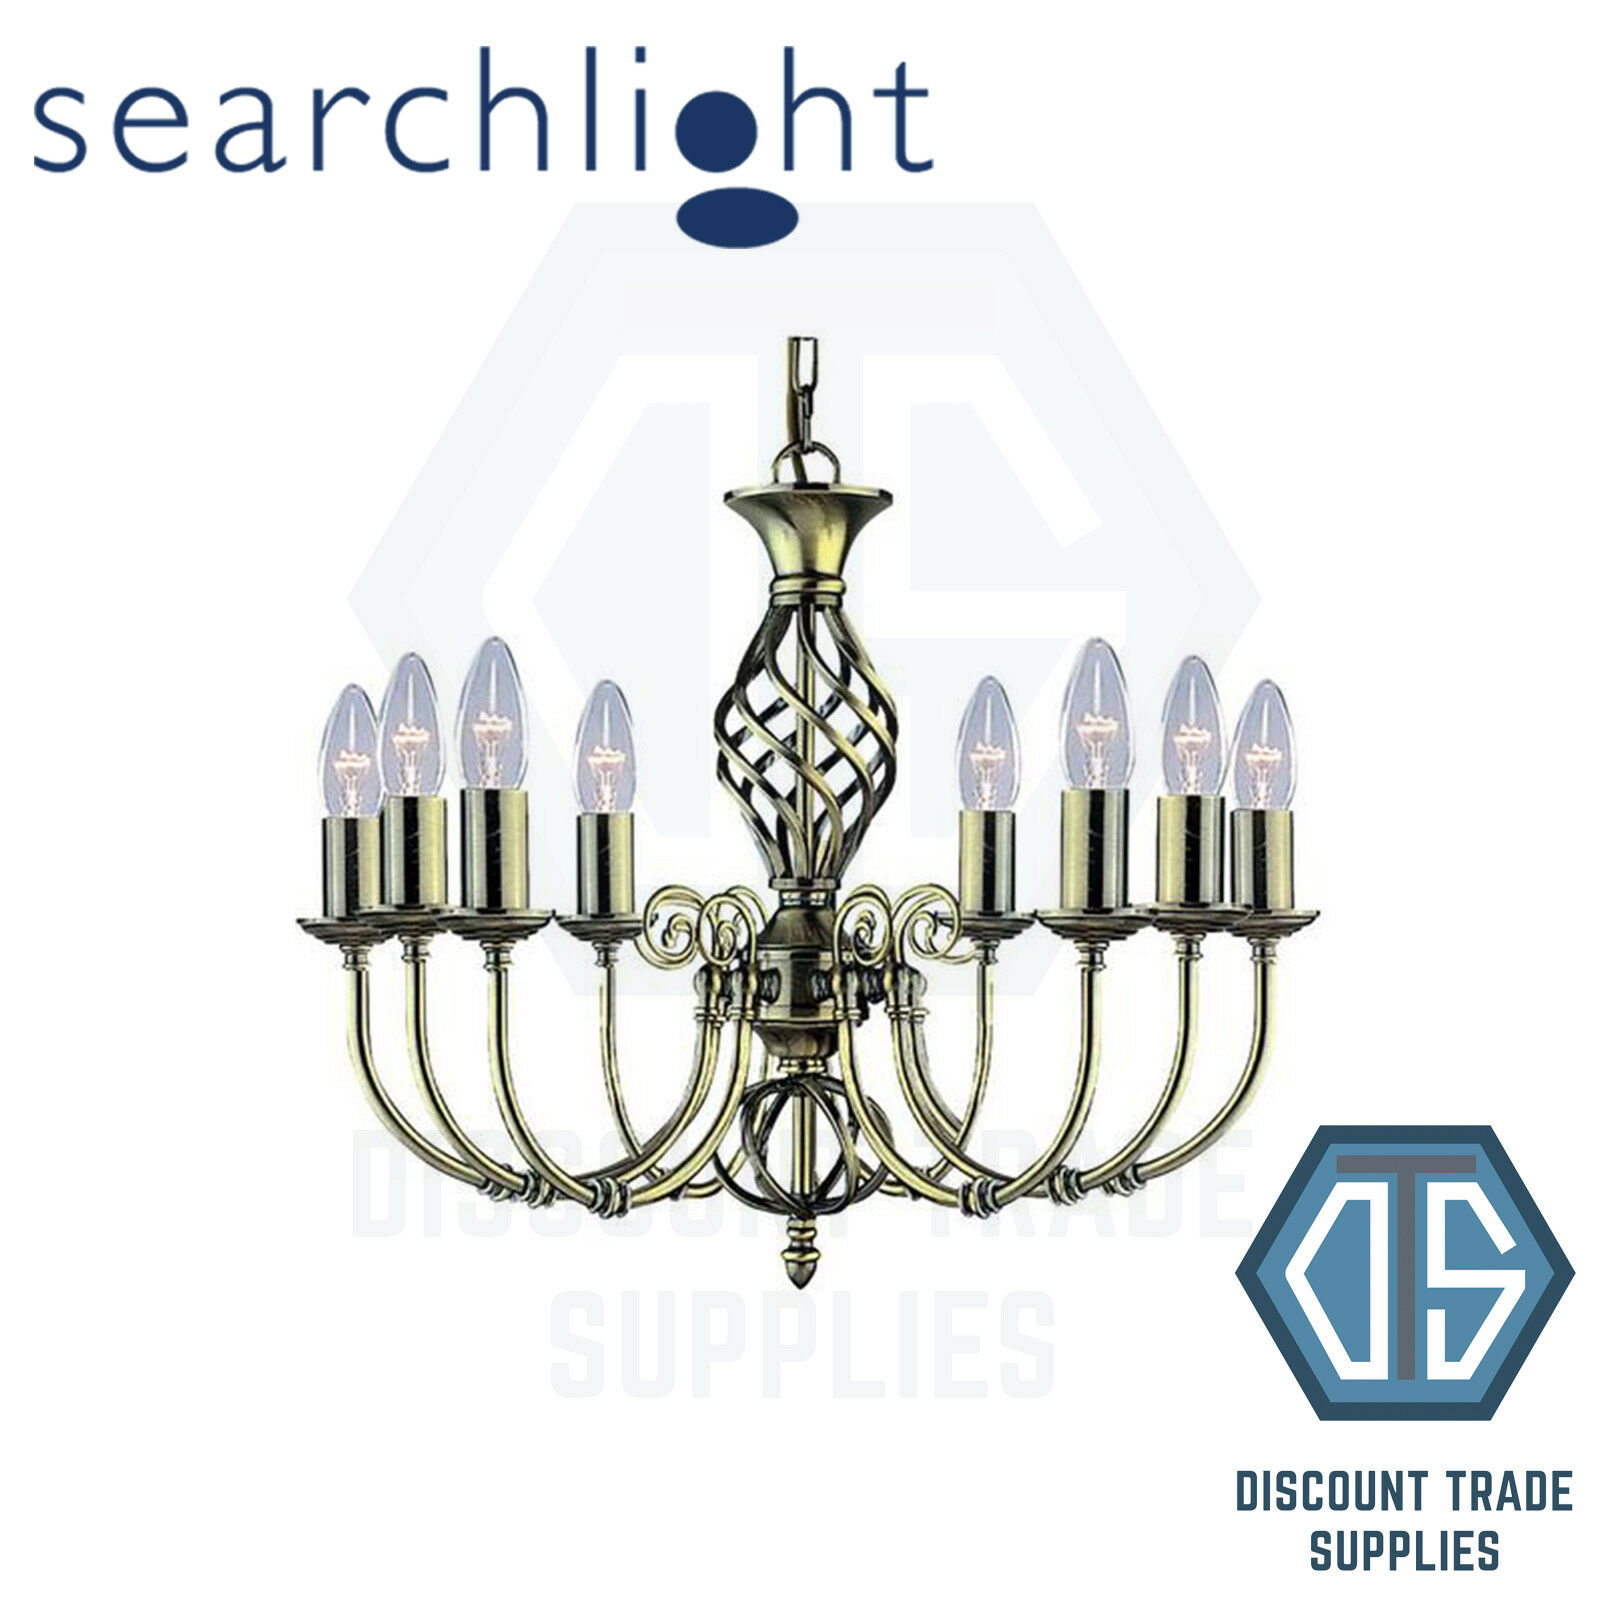 8398-8 SEARCHLIGHT ZANZIBAR ANTIQUE BRASS 8 LIGHT FITTING, TWISTED COLUMN